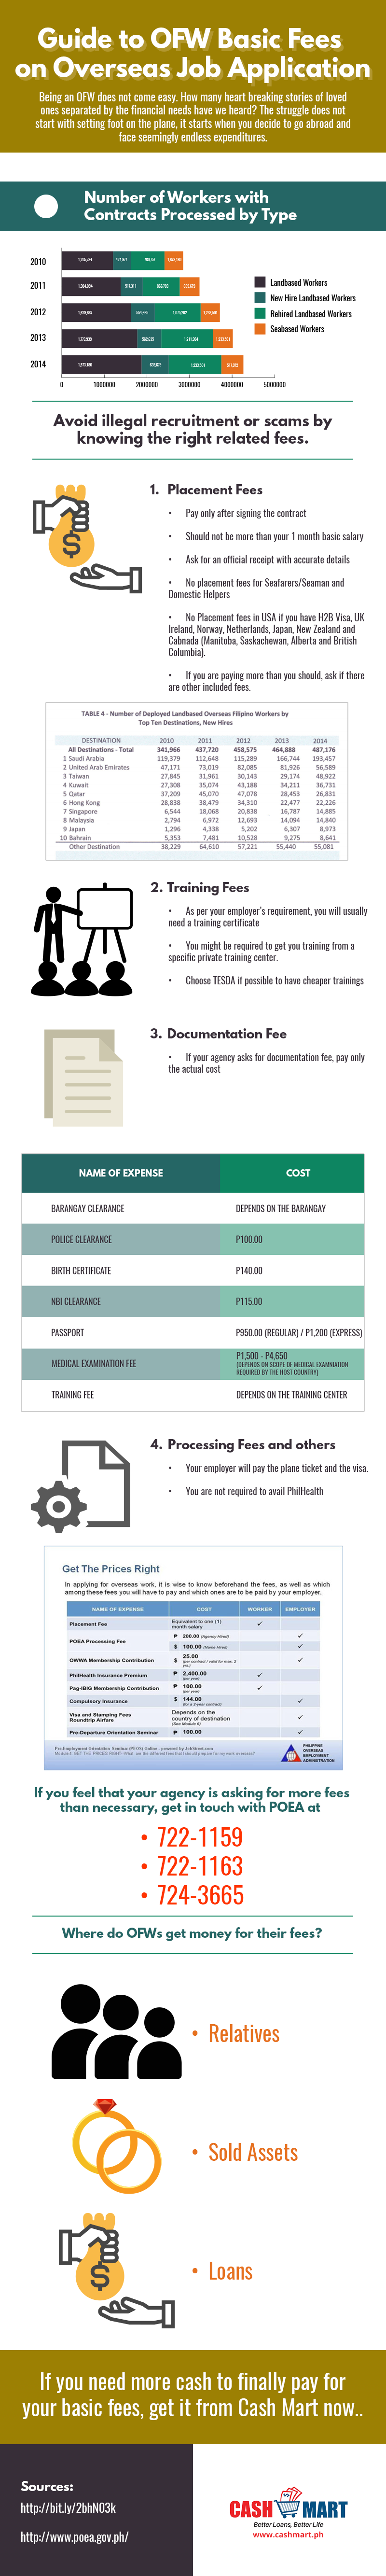 guide to ofw basic fees on overseas job application cash mart